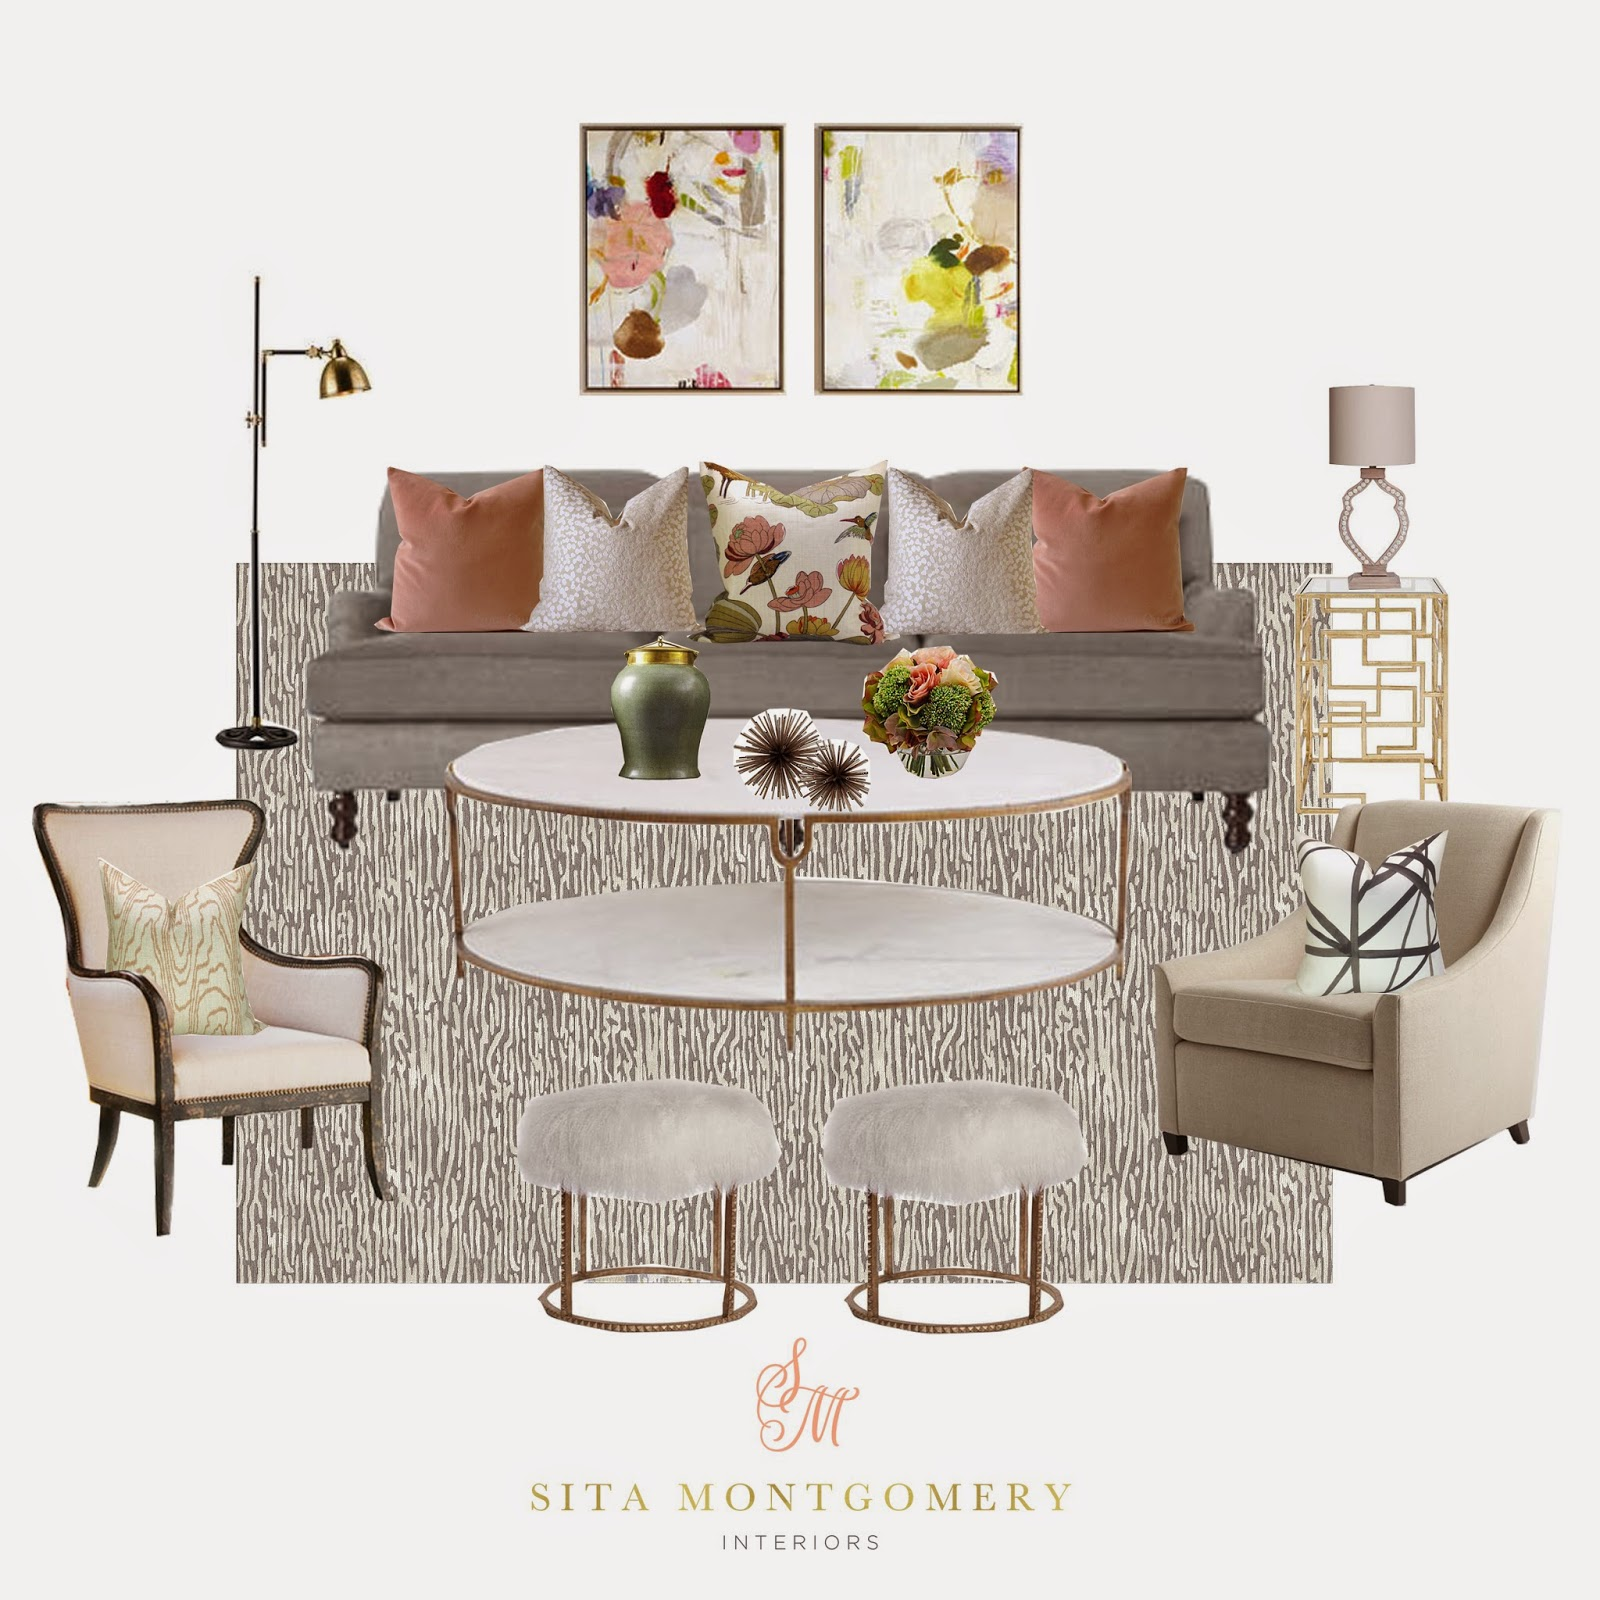 sita montgomery interiors february 2015 seriously i want this space to exist in my house be sure to head over to kathy kuo home to shop for items from this design board and check to out all